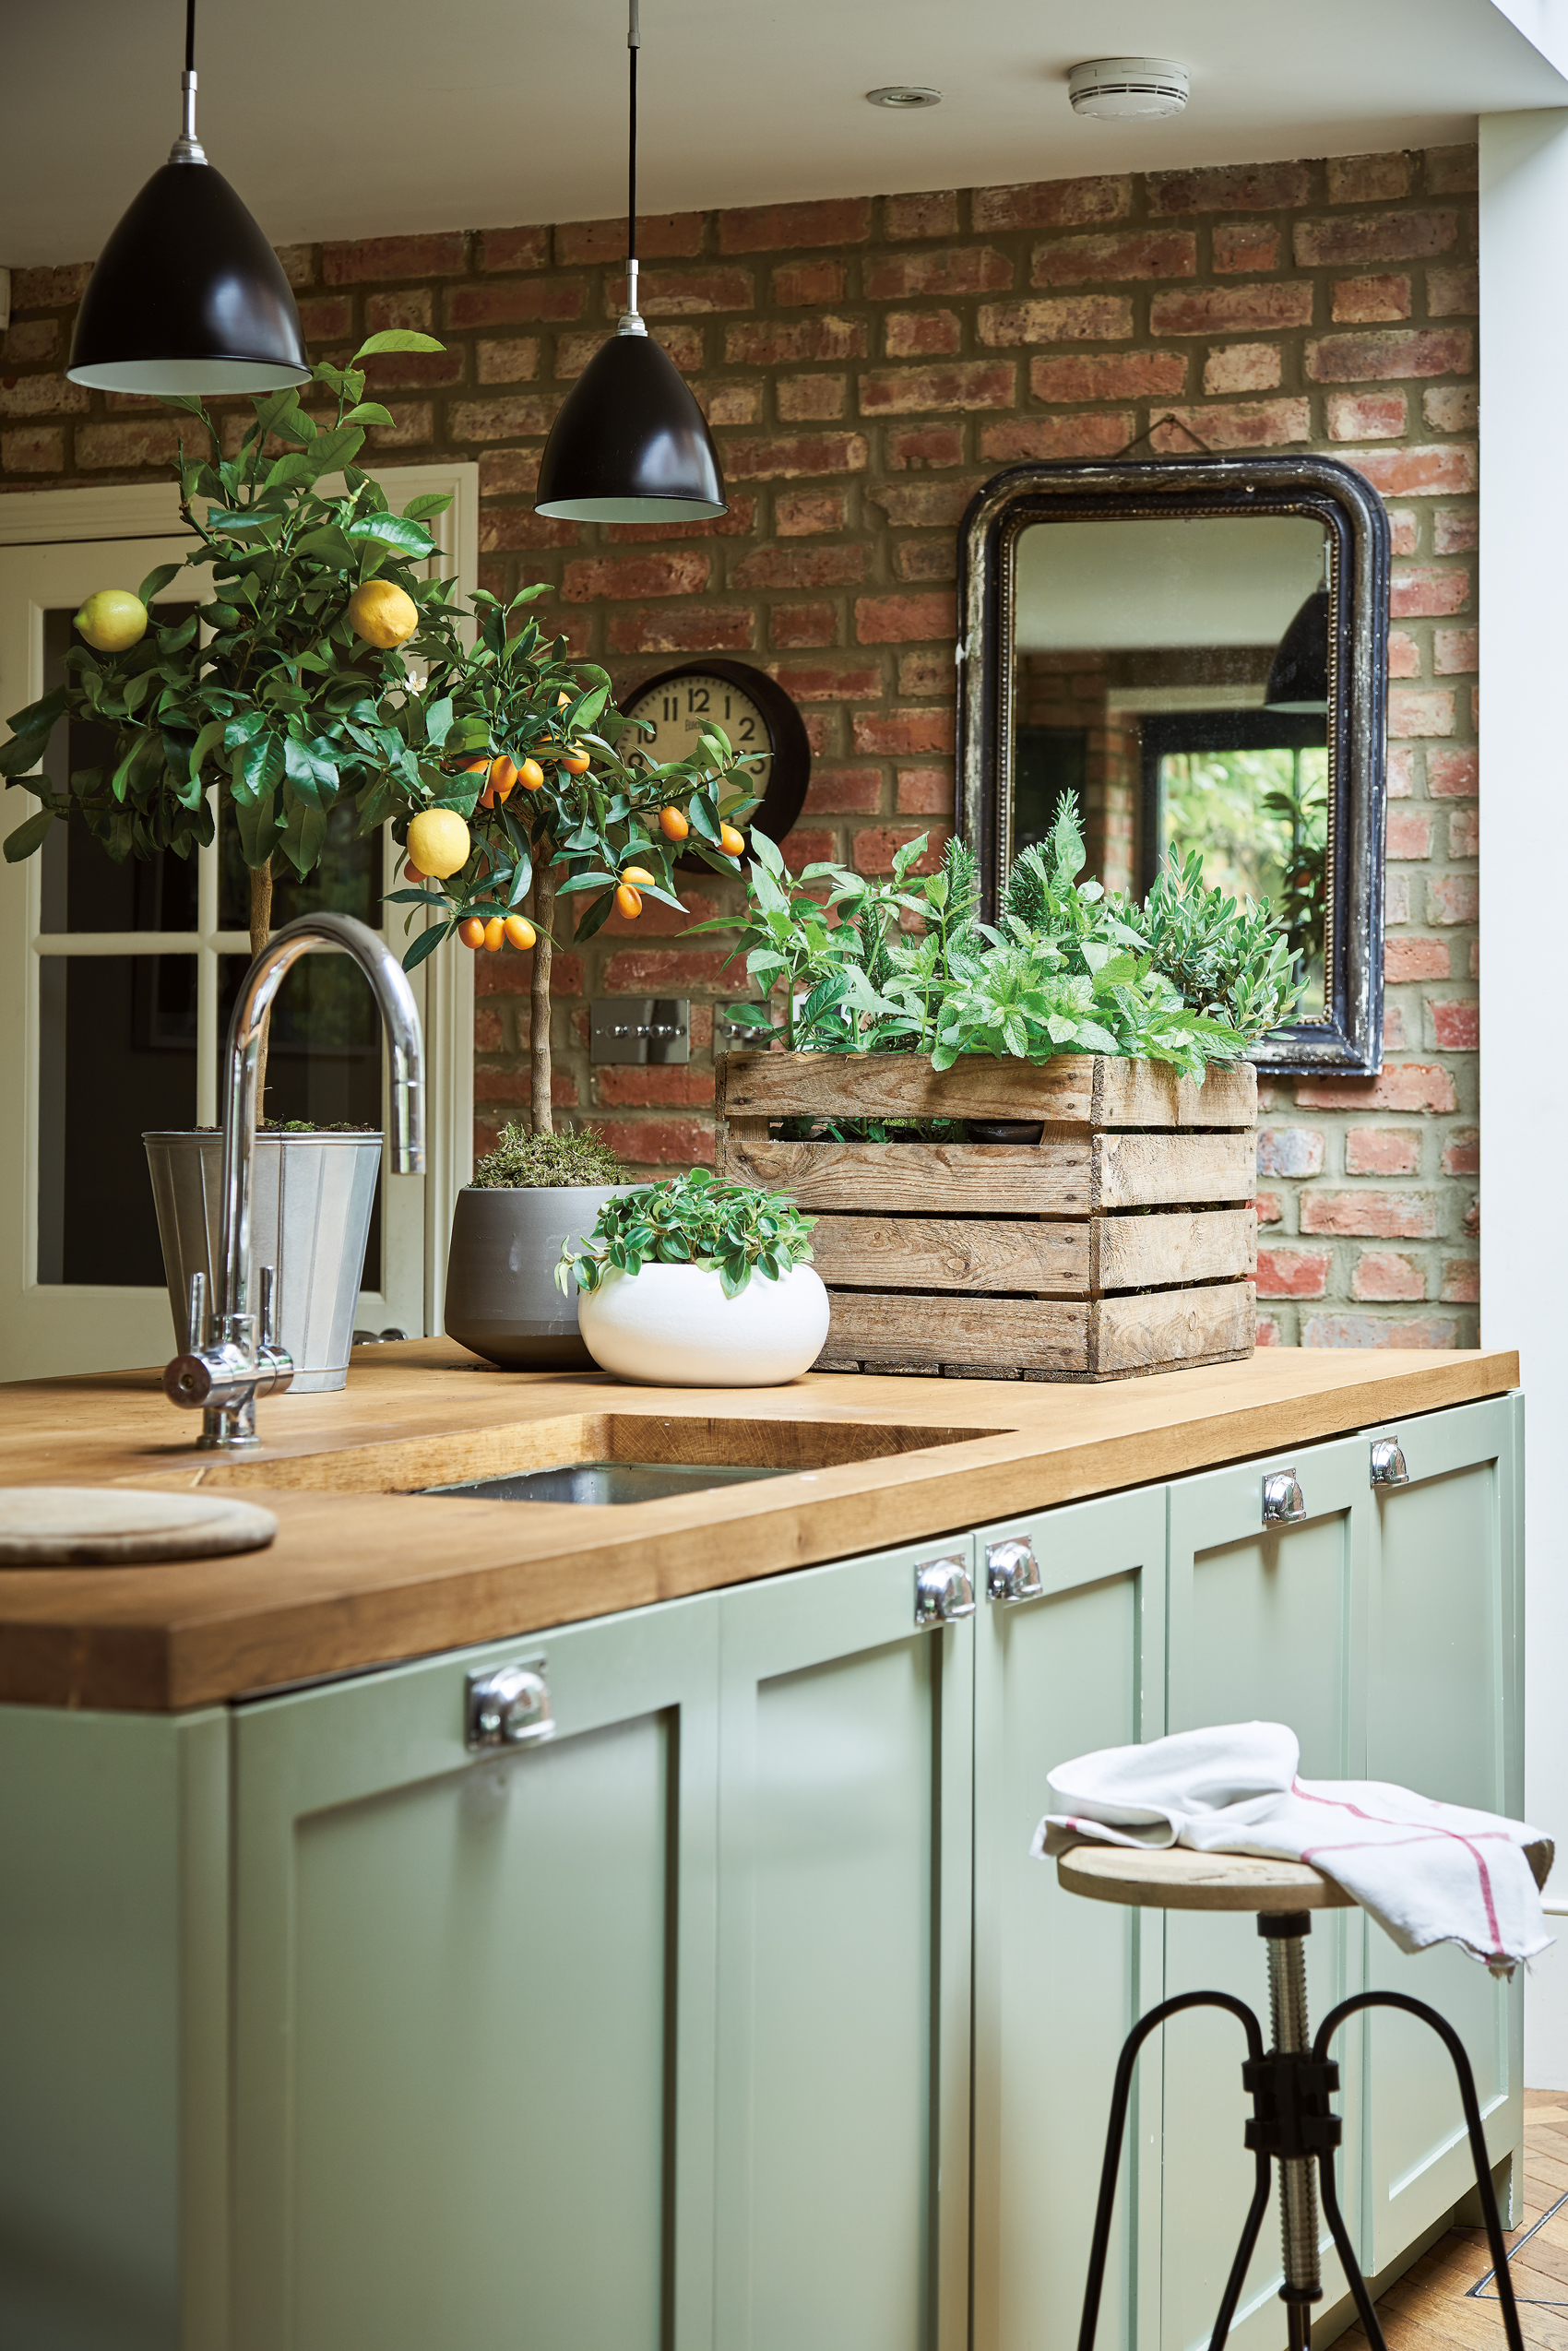 Create your own indoor kitchen garden with a selection of edible plants such as kumquat; calamondin orange; mixed herbs and chilli pepper. Room featured in At Home With Plants (Nick Pope/Mitchell Beazley/PA)